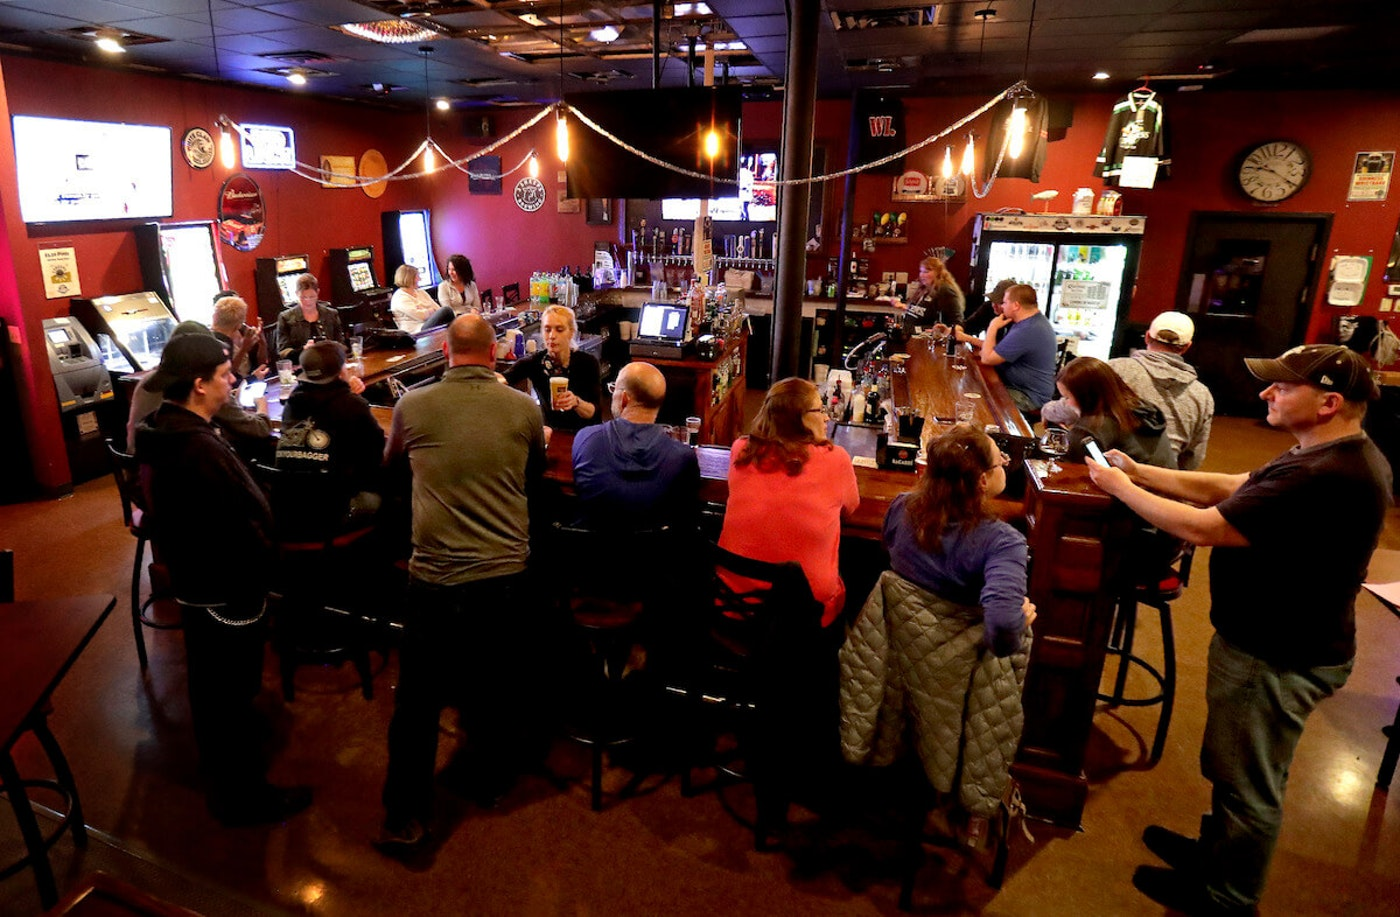 The Dairyland Brew Pub opens to patrons in Appleton. A Wisconsin judge on Monday, Oct. 19, reimposed an order from Gov. Tony Evers' administration limiting the number of people who can gather in bars, restaurants and other indoor venues to 25% of capacity. That decision was overturned in October. The issue of capacity limits was back before the Wisconsin Supreme Court Friday, Dec. 17. (William Glasheen/The Post-Crescent via AP File)